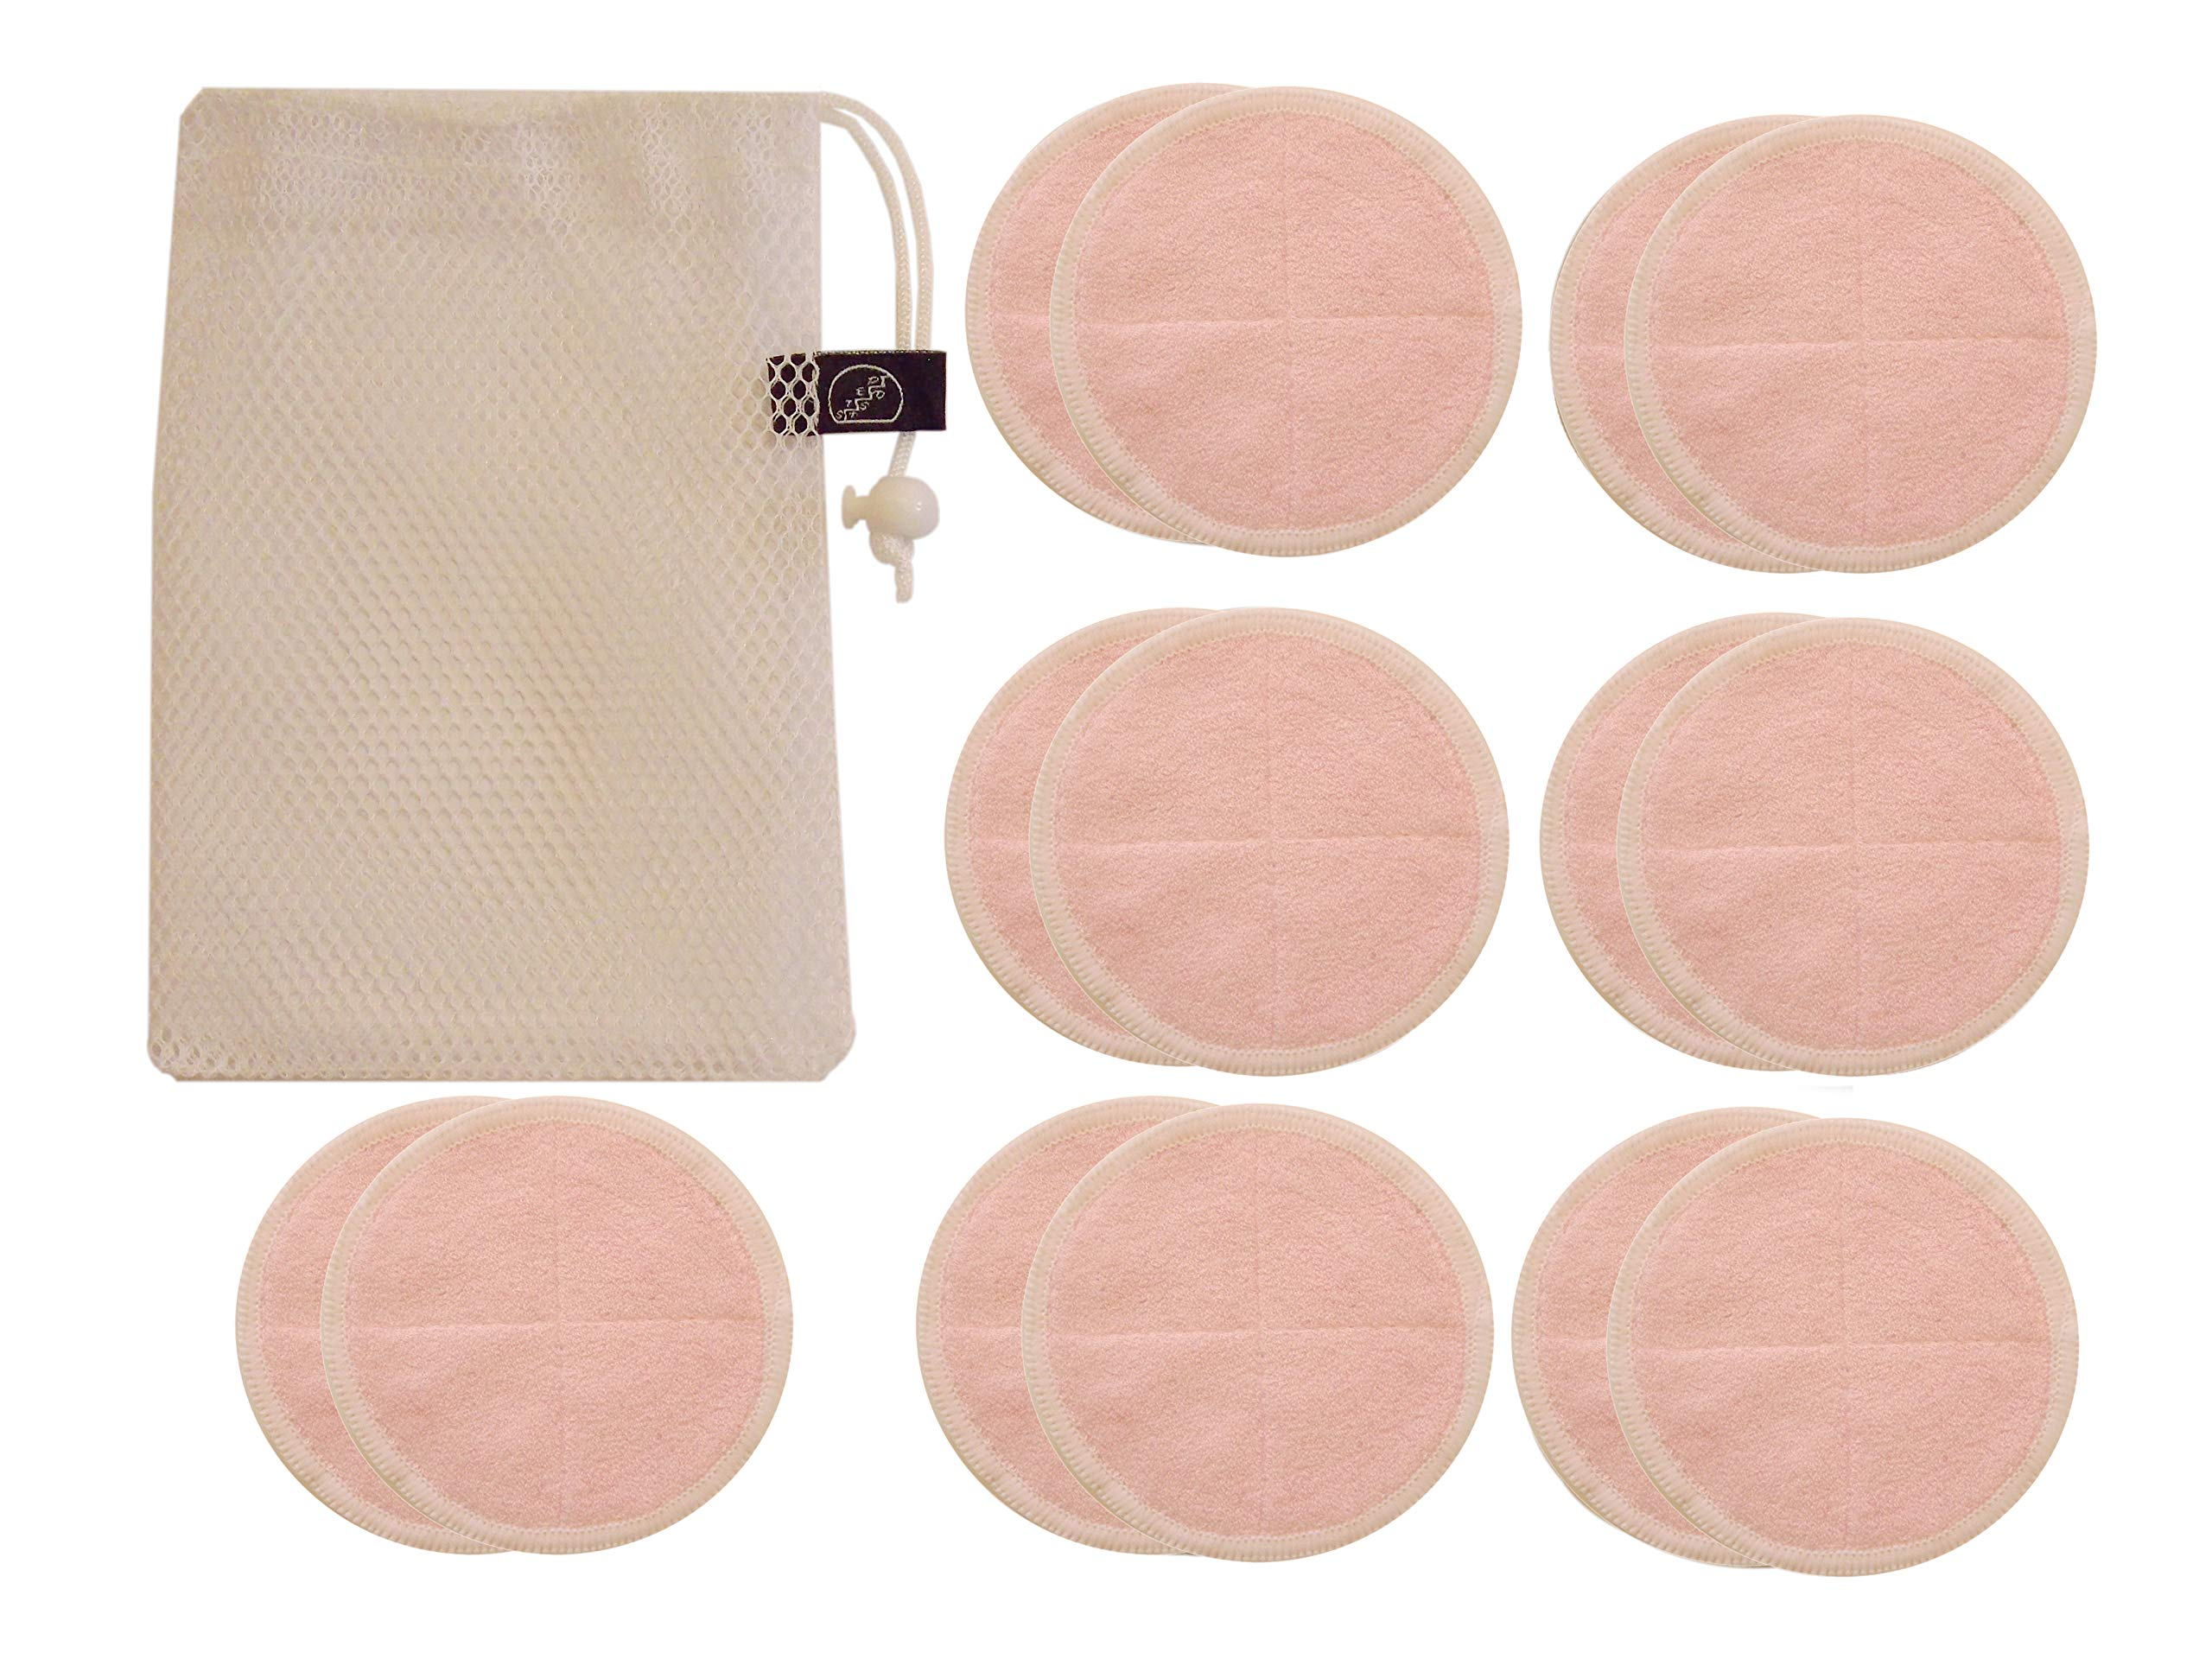 STEPNSD Premium Stitched Organic Bamboo Makeup Remover Pads - 14 Pack with Laundry Bag - Chemical Free & Reusable, Soft Facial and Skin Care Wash Cloth Towel (Pink) by STEPNSD Beauty